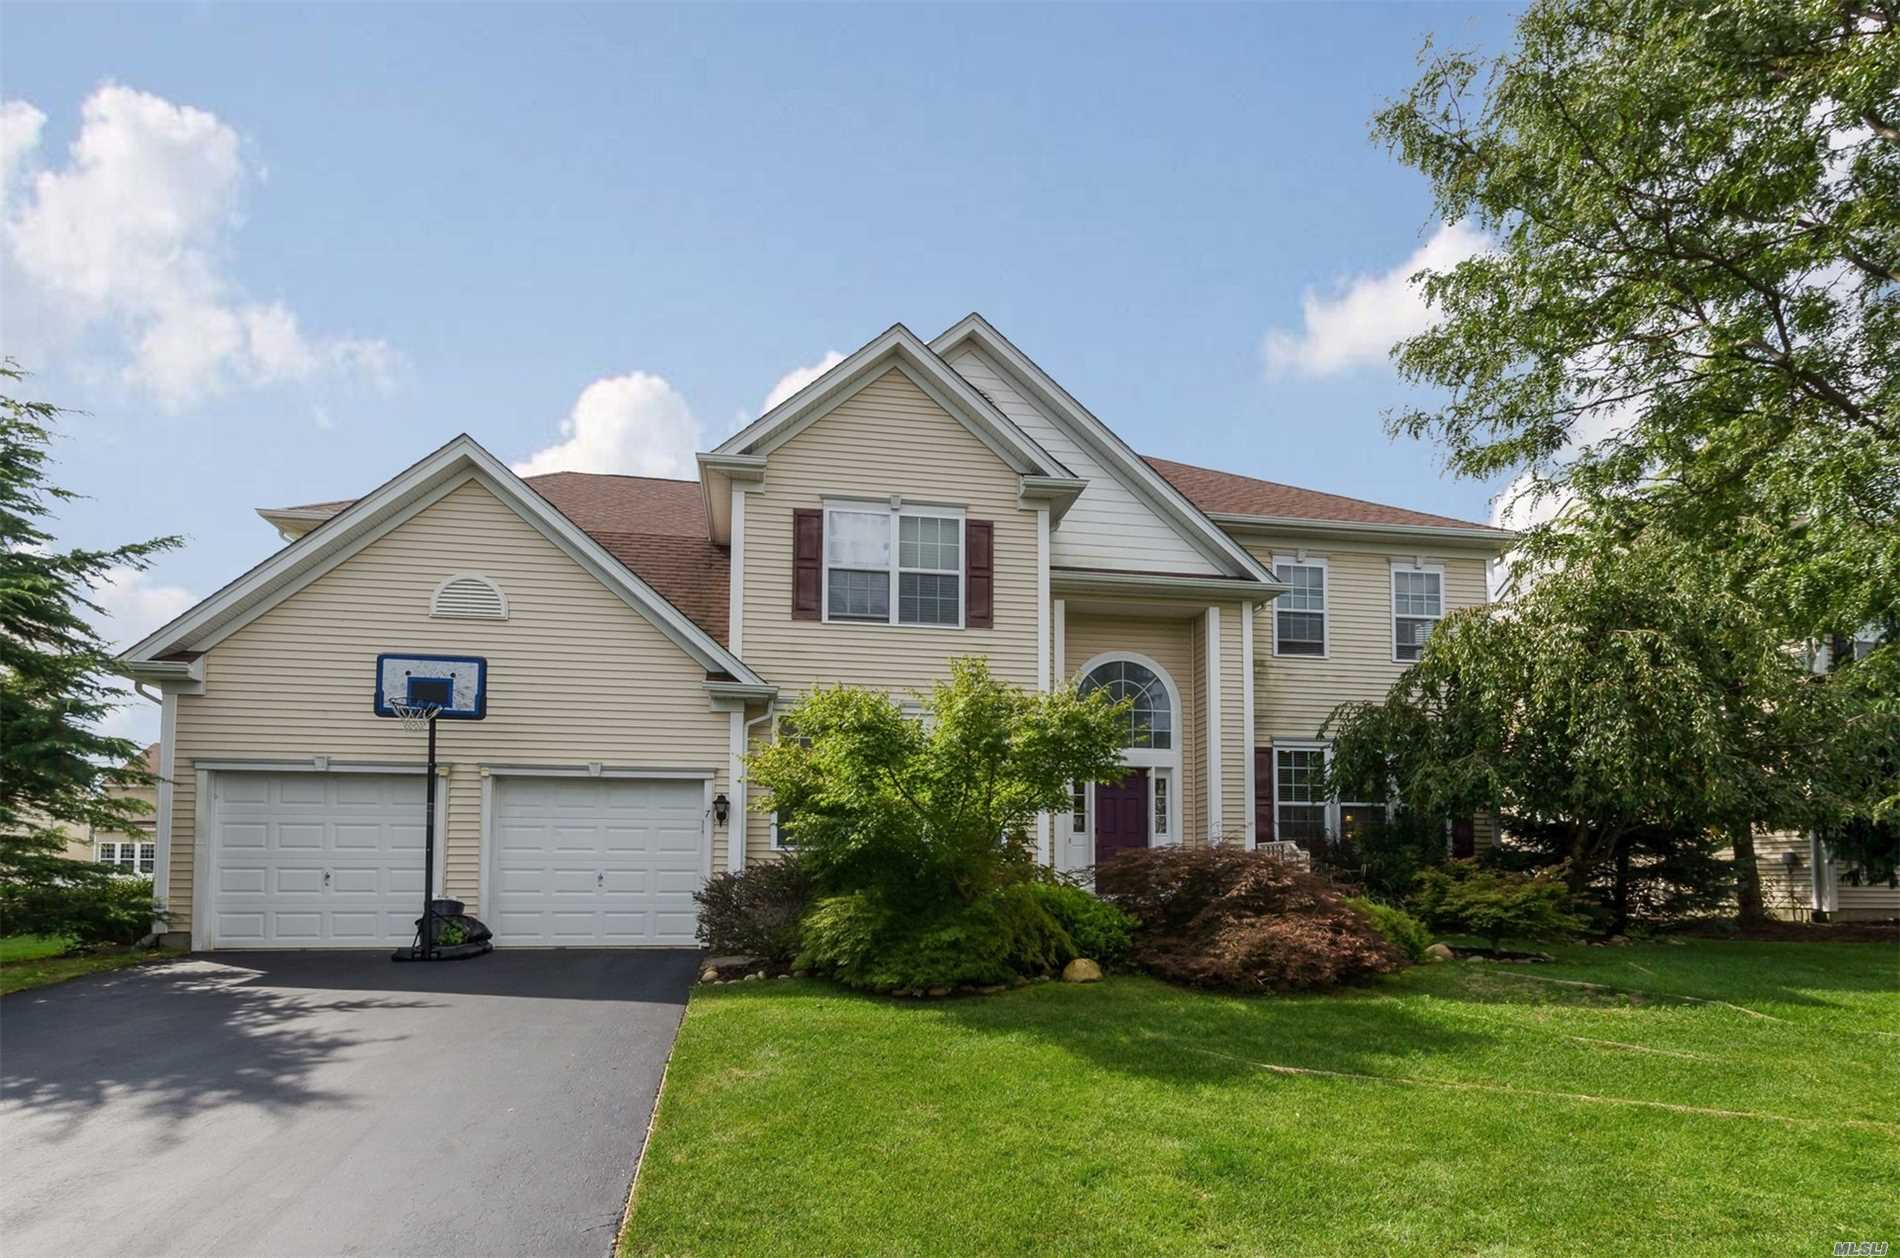 Photo of home for sale at 7 Avolet Ct, Mt. Sinai NY